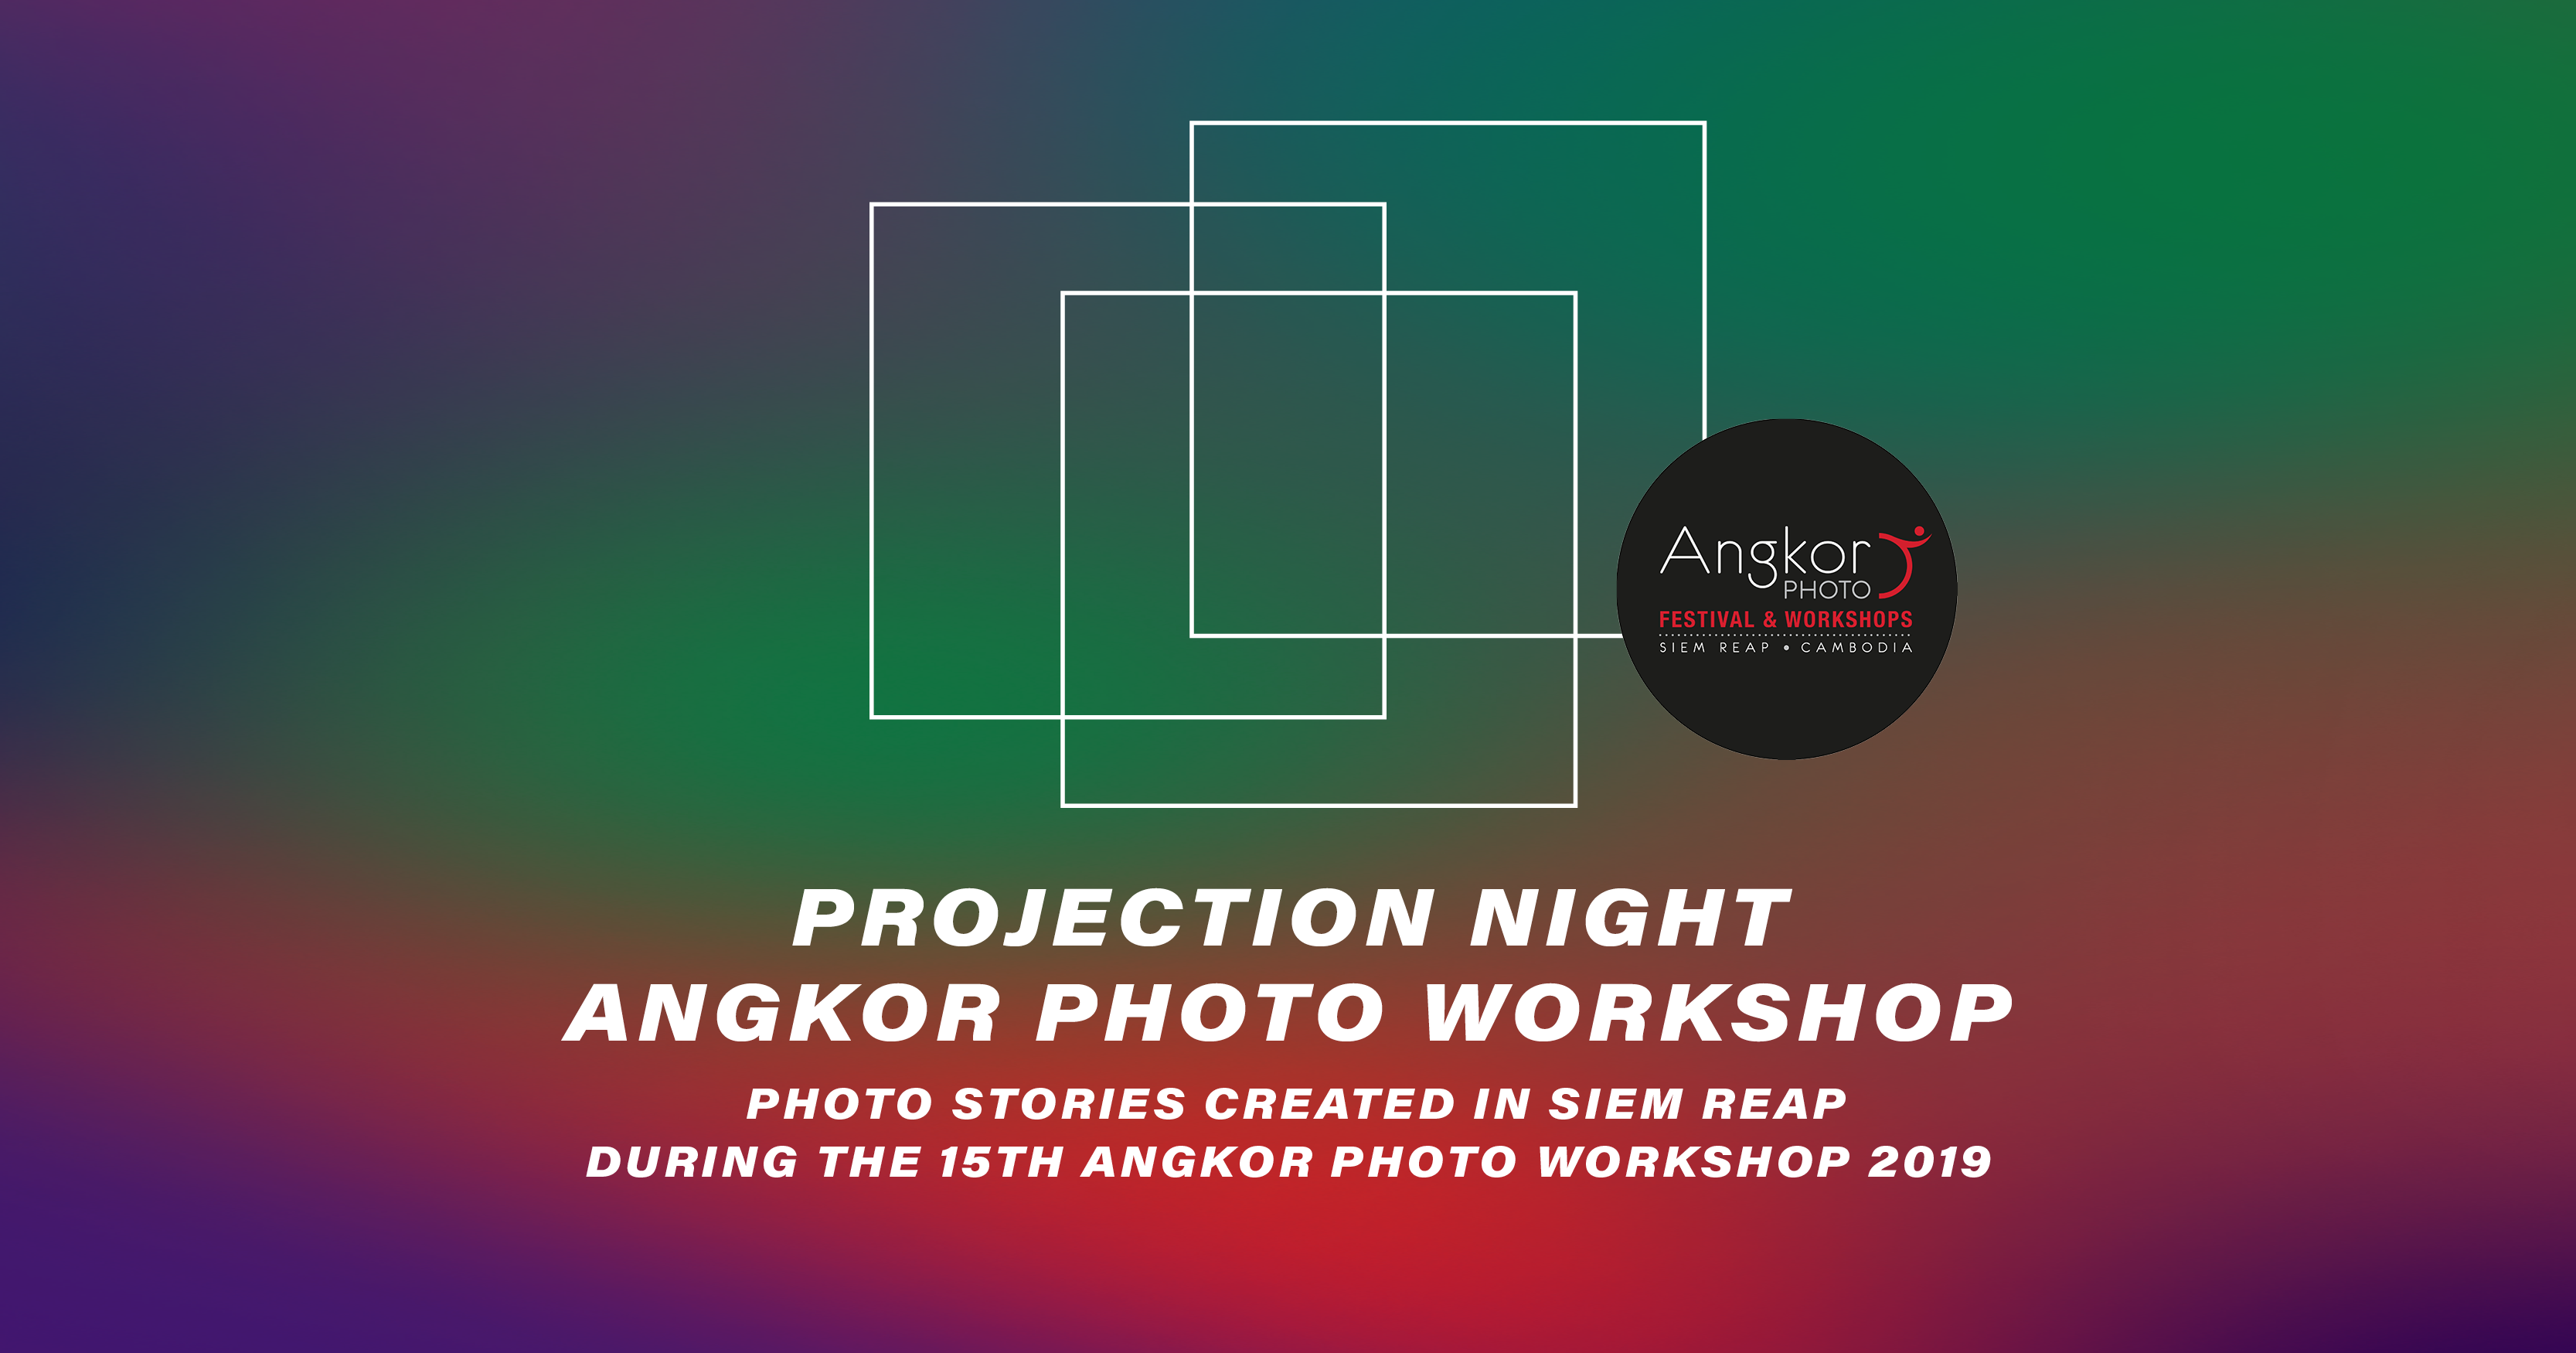 Angkor Hangover: Angkor Photo Festival & Workshops at MIRAGE Contemporary Art Space in Siem Reap, Cambodia